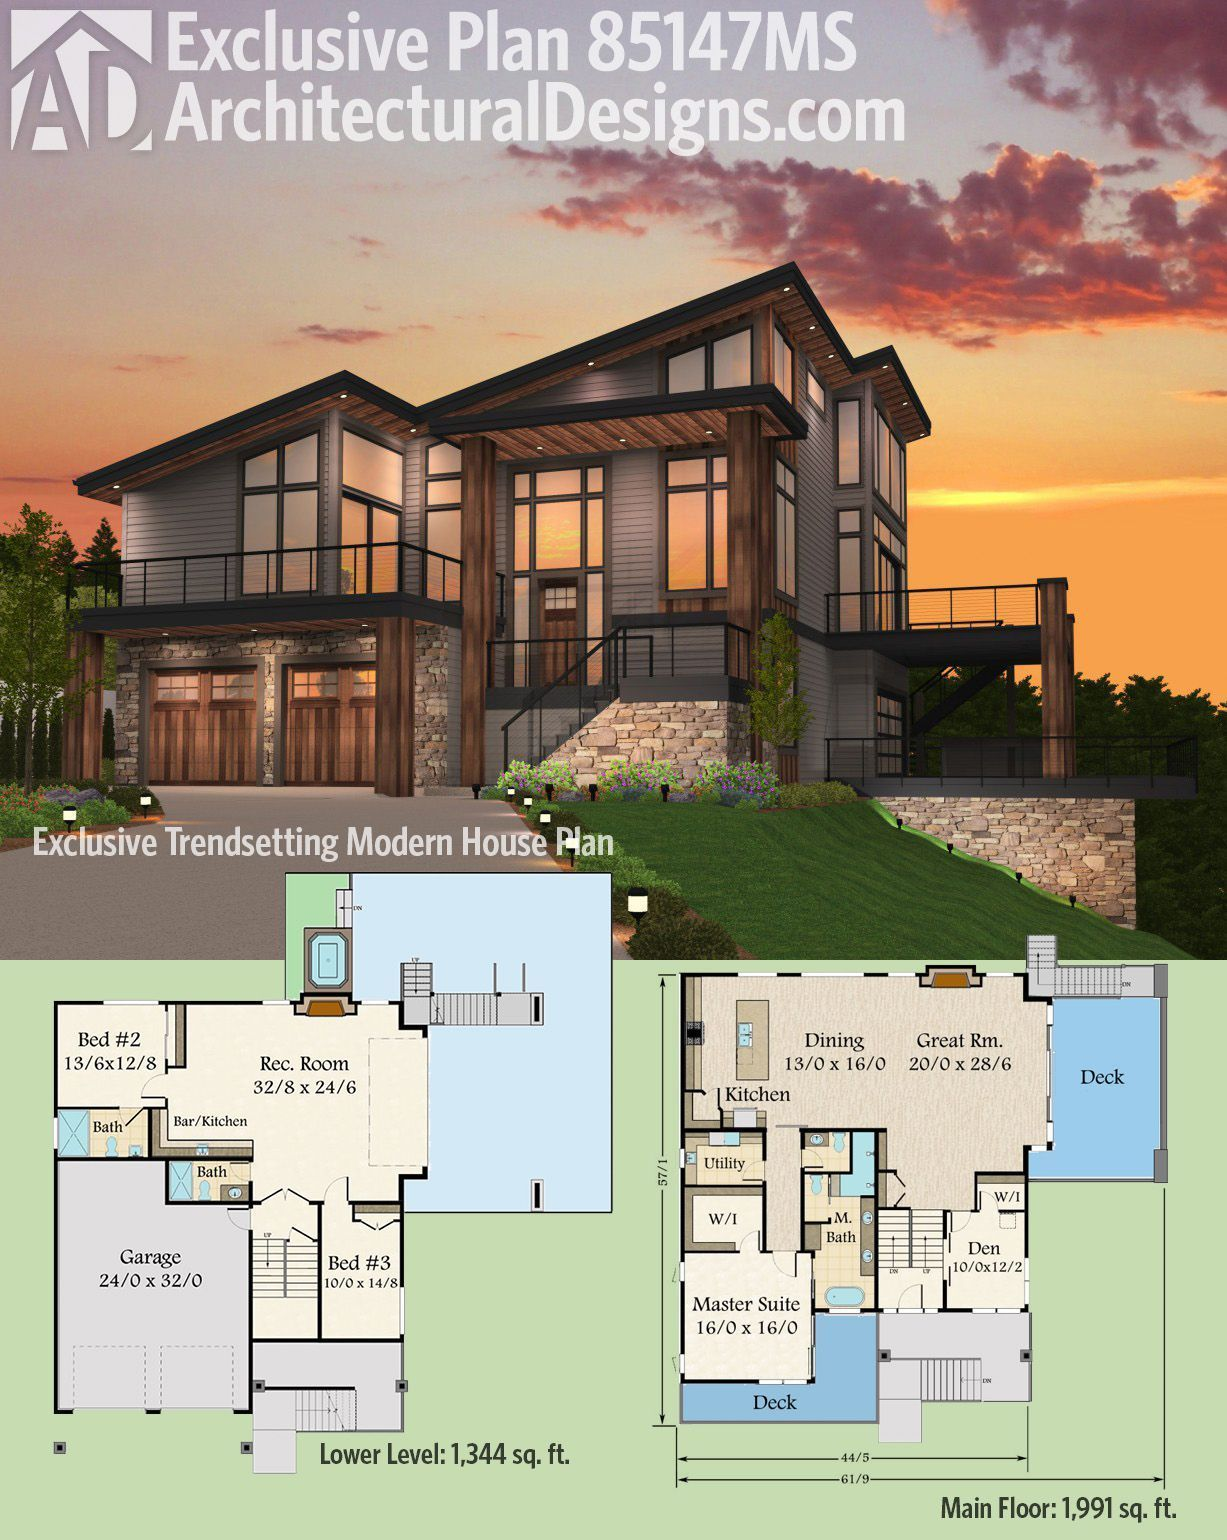 House Architectural Designs Exclusive Modern House